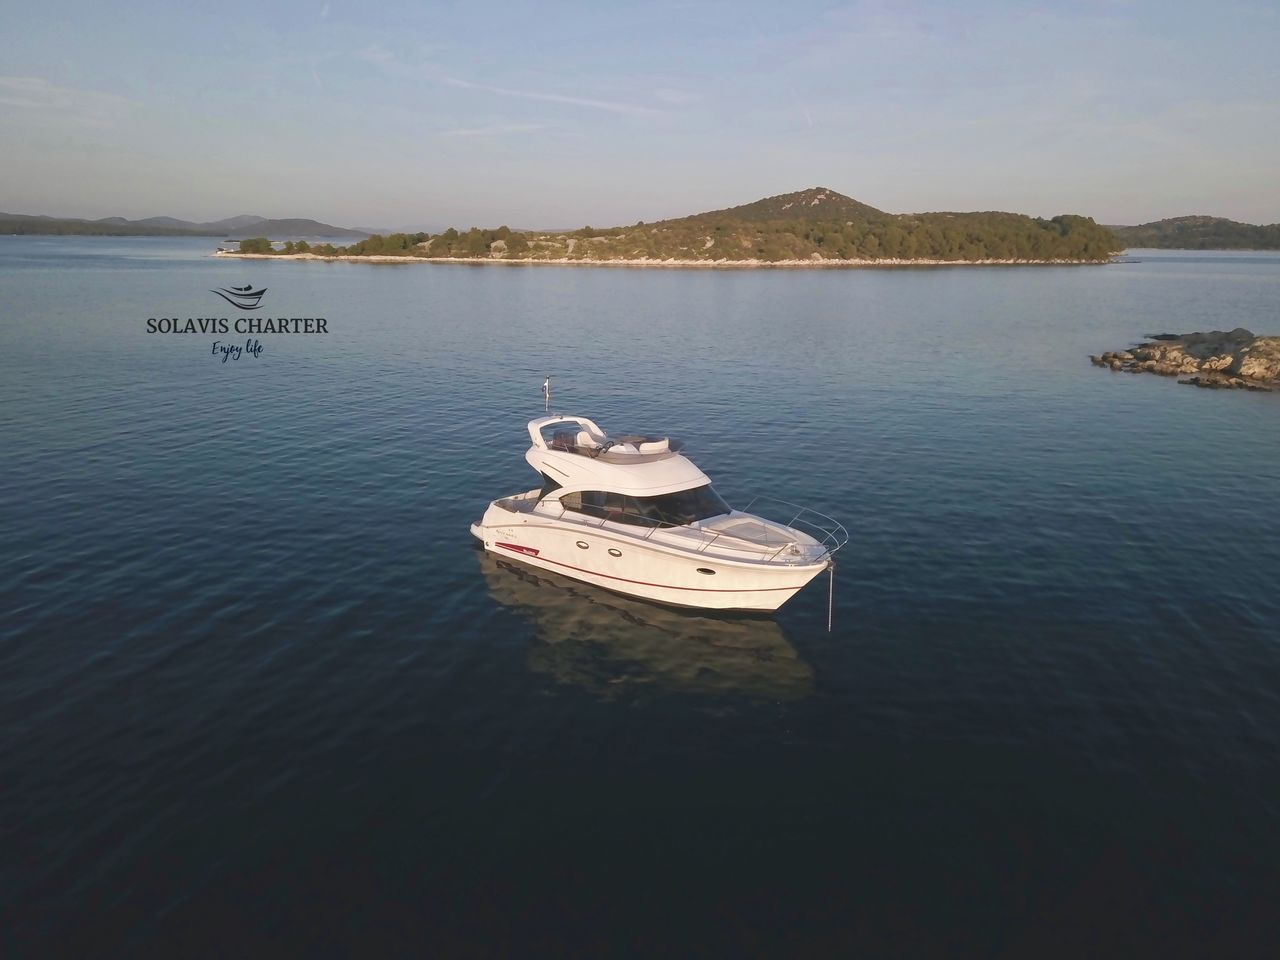 Antares 36 by Sea Dream Charter - fotka 2